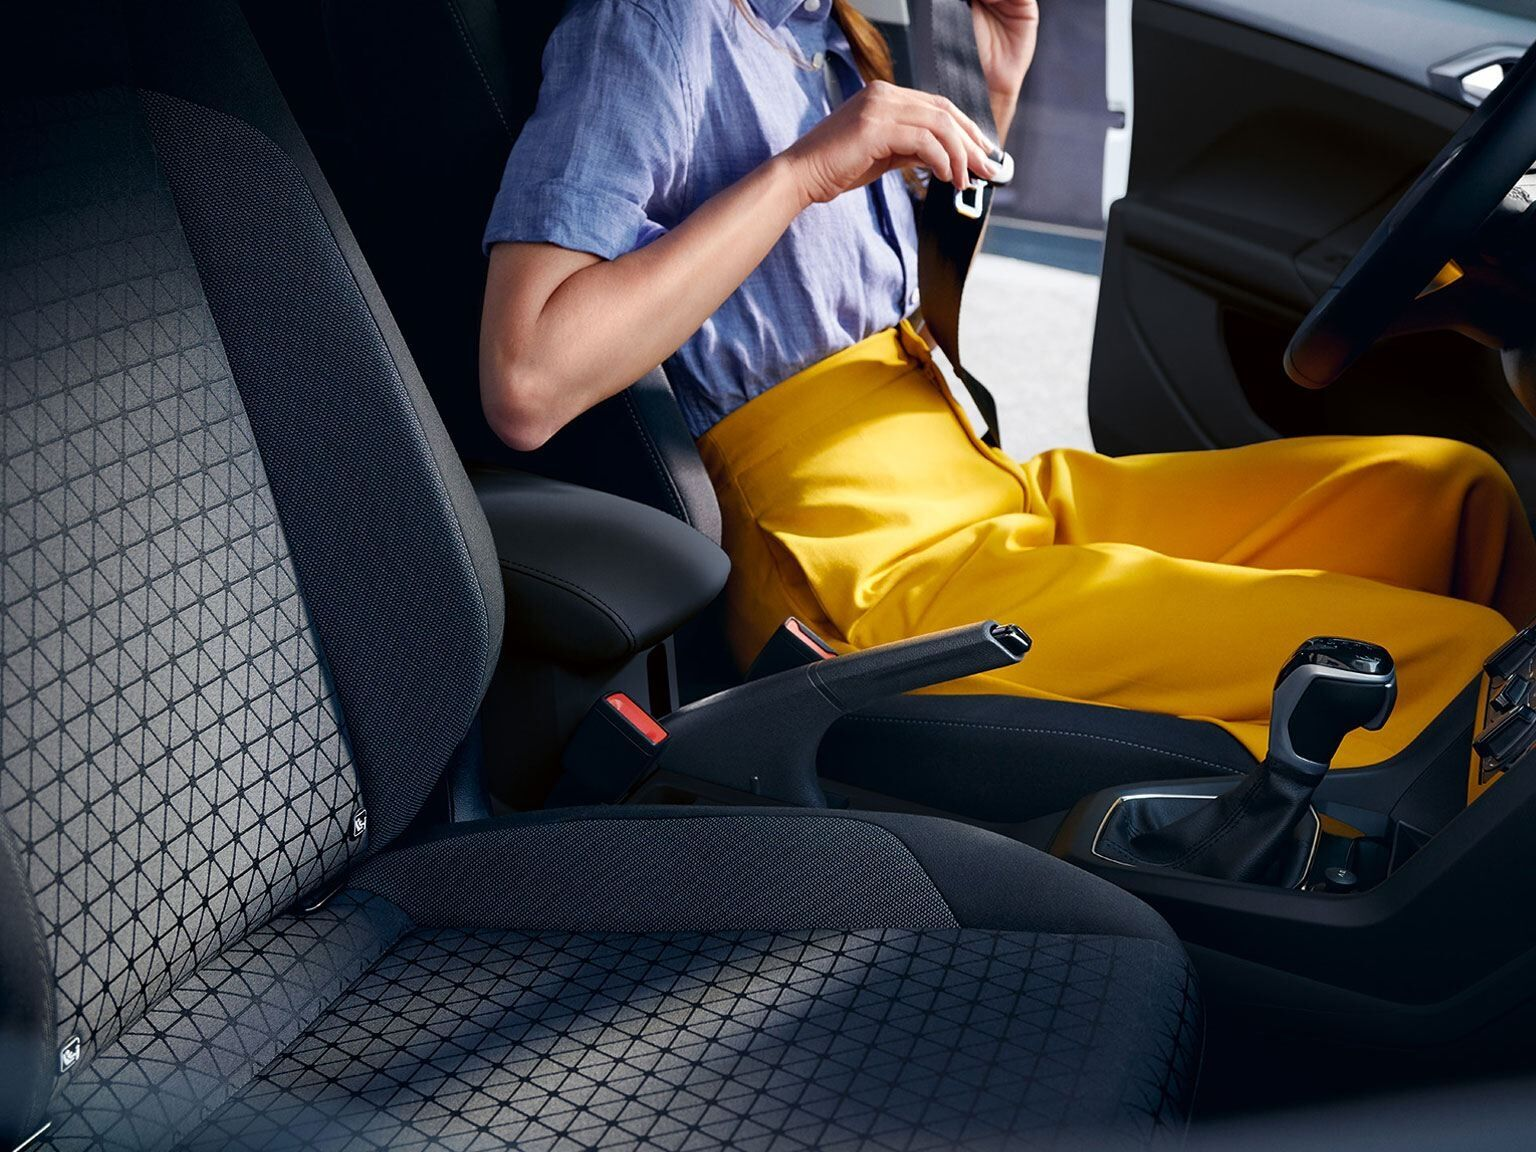 vw t cross interior with passenger seat and woman on driver seat